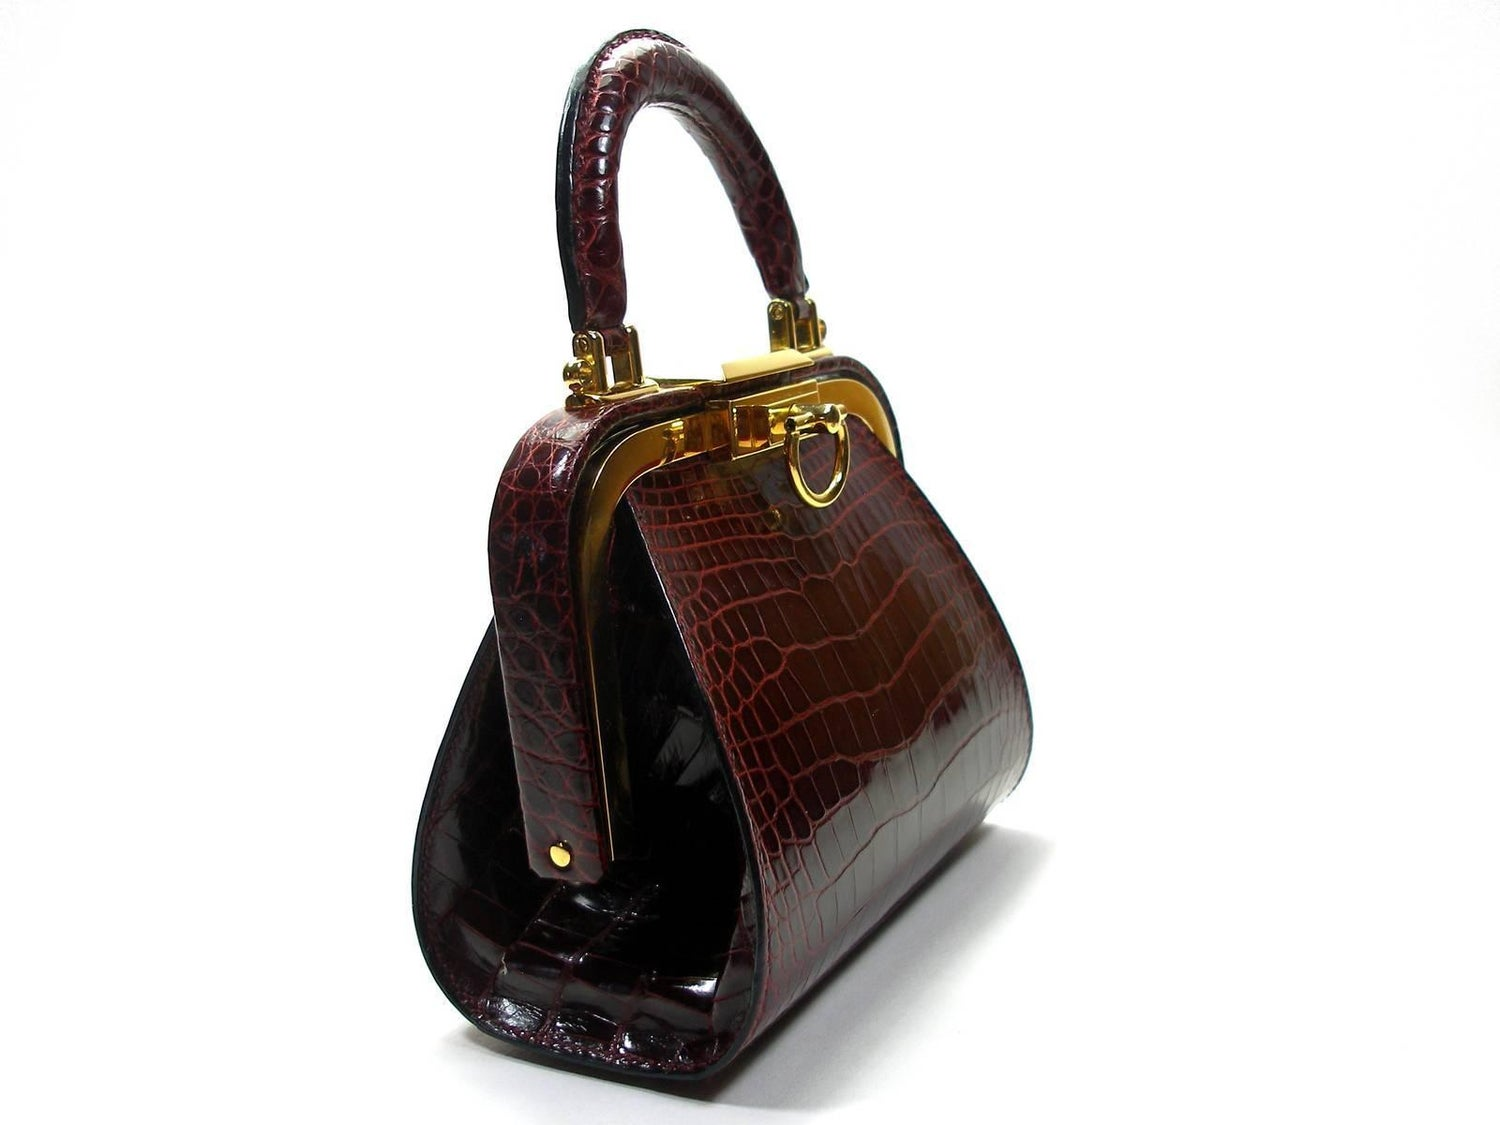 Christian Dior Vintage Rare Doctor Style Micro Handbag in Alligator Leather  For Sale at 1stdibs 82ac4b9d7c894